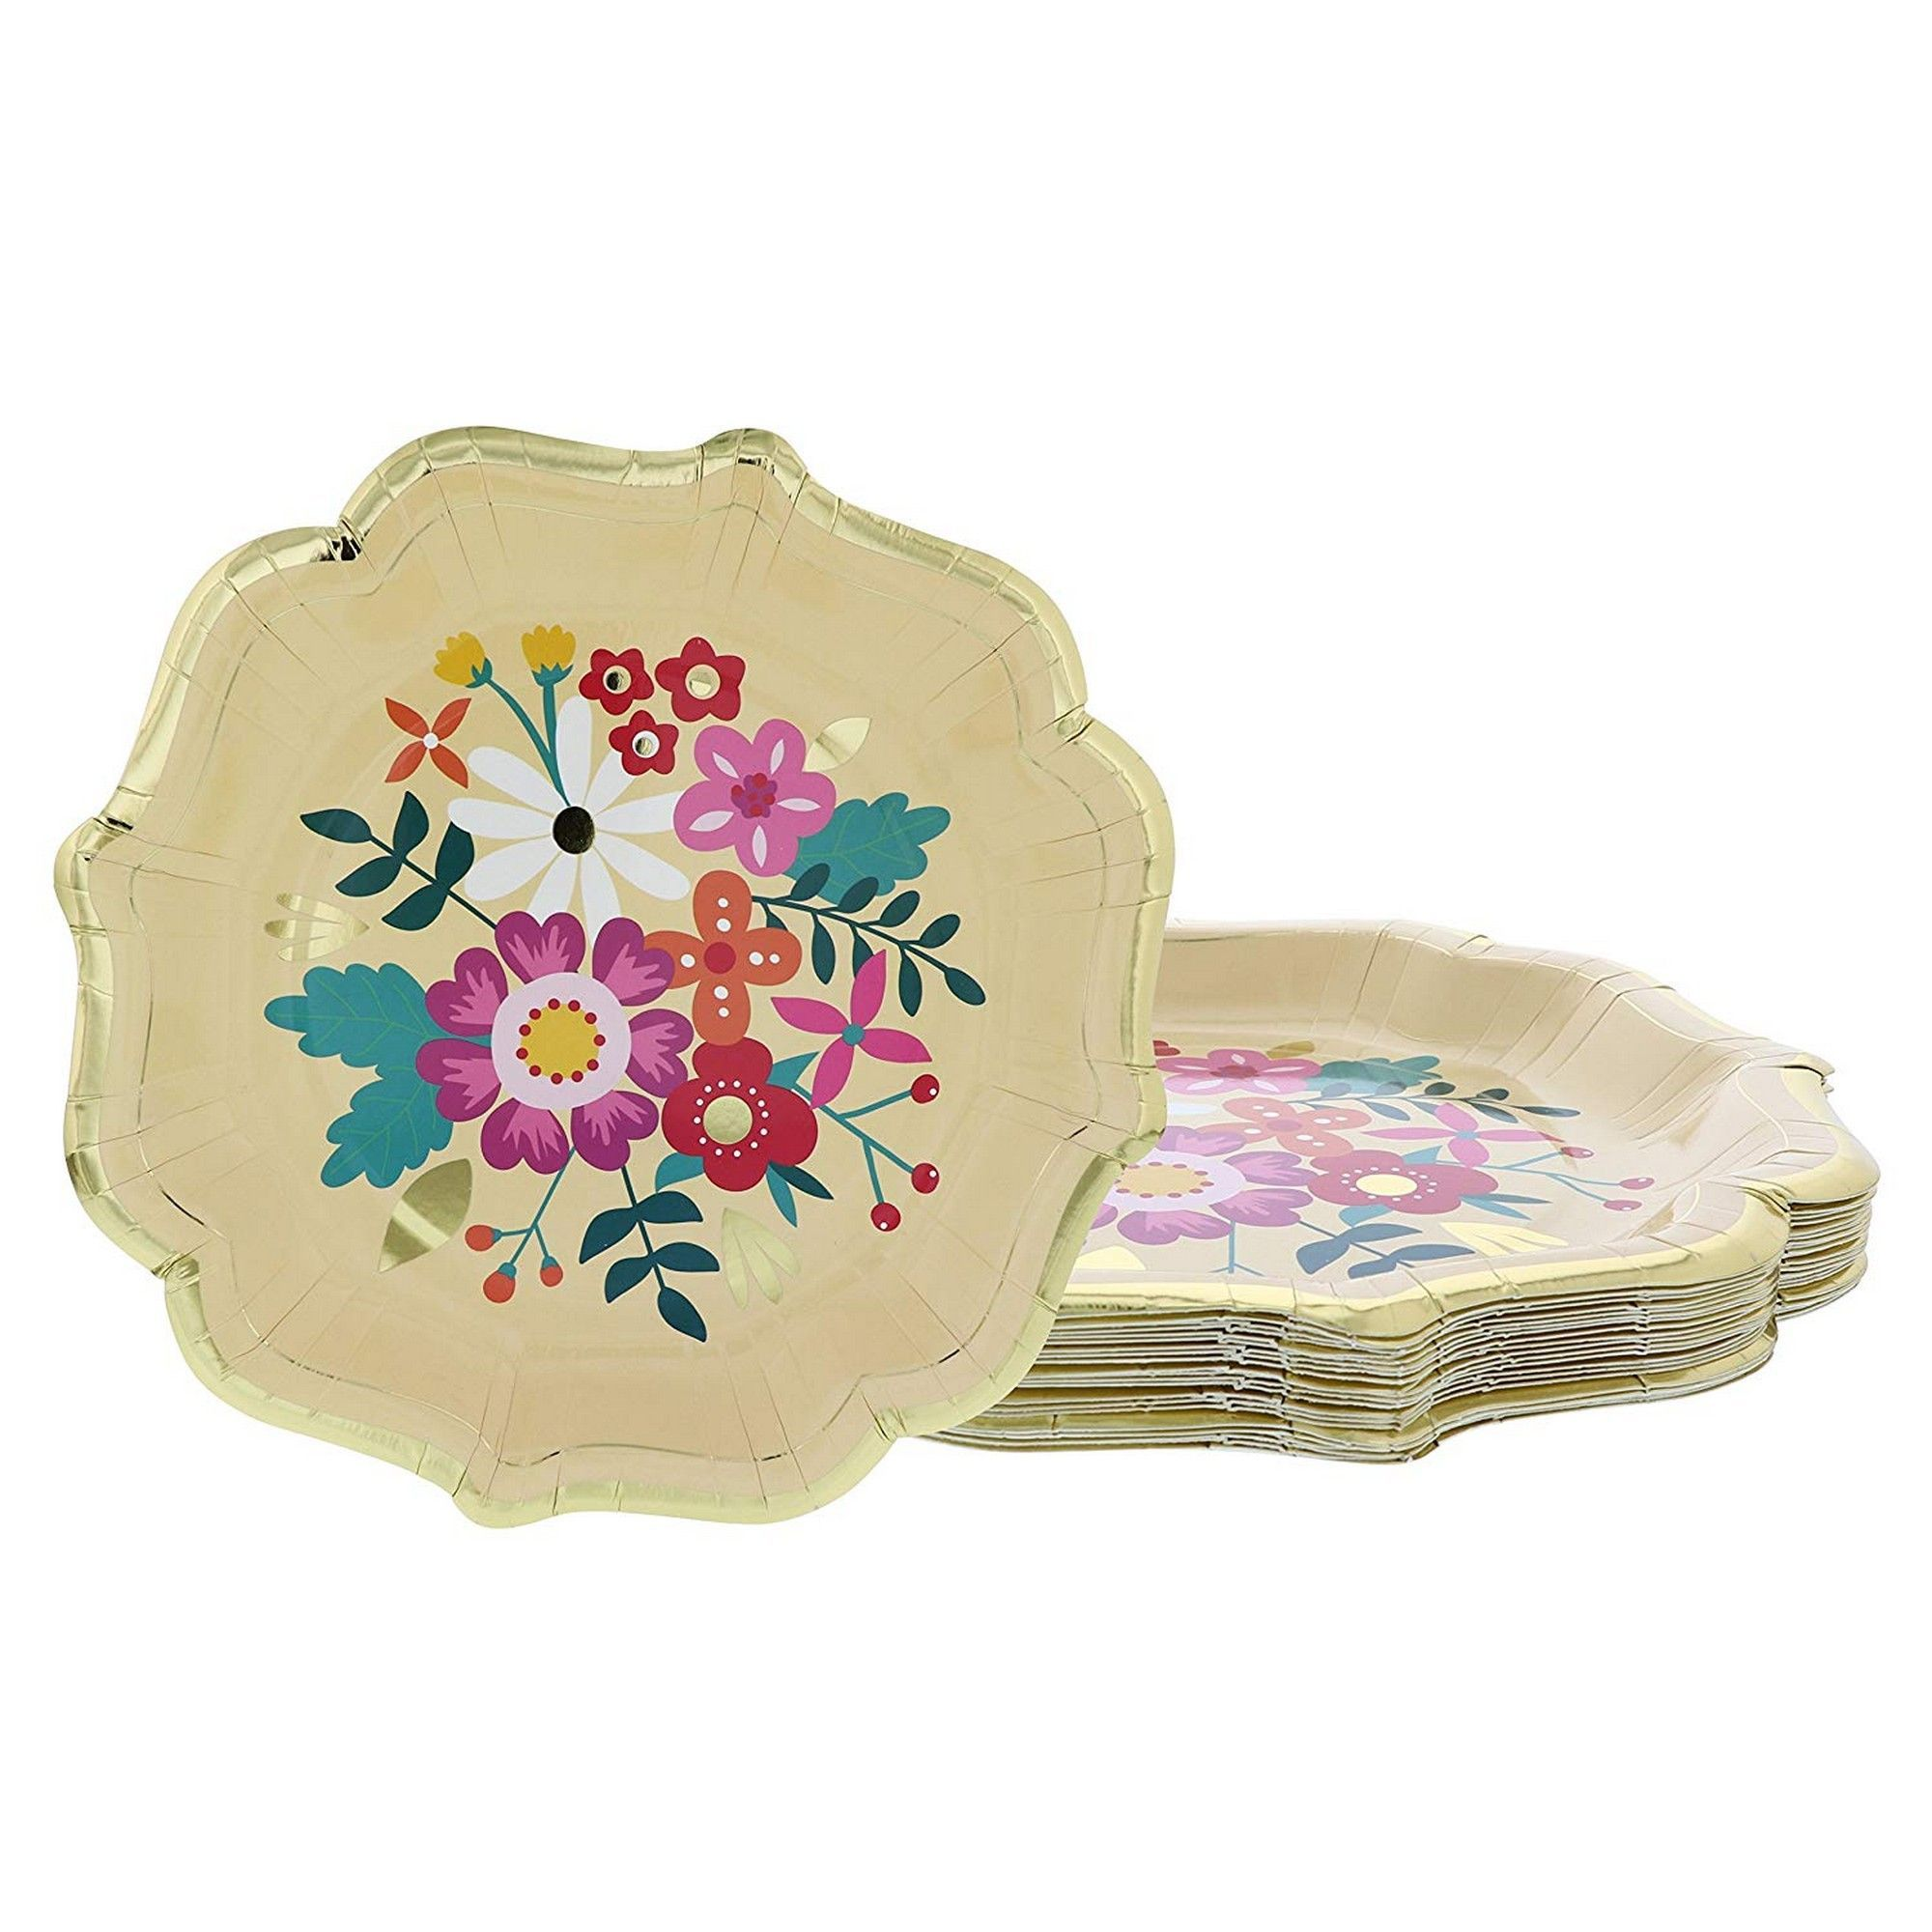 Disposable Plates 24 Count Paper Plates Vintage Floral Party Supplies For Appetizer Lunch Dinner And Dessert Bridal Showers Weddings Gold Foil Scalloped Edge Design 9 2 X 9 2 Inches Walmart Com Walmart Com